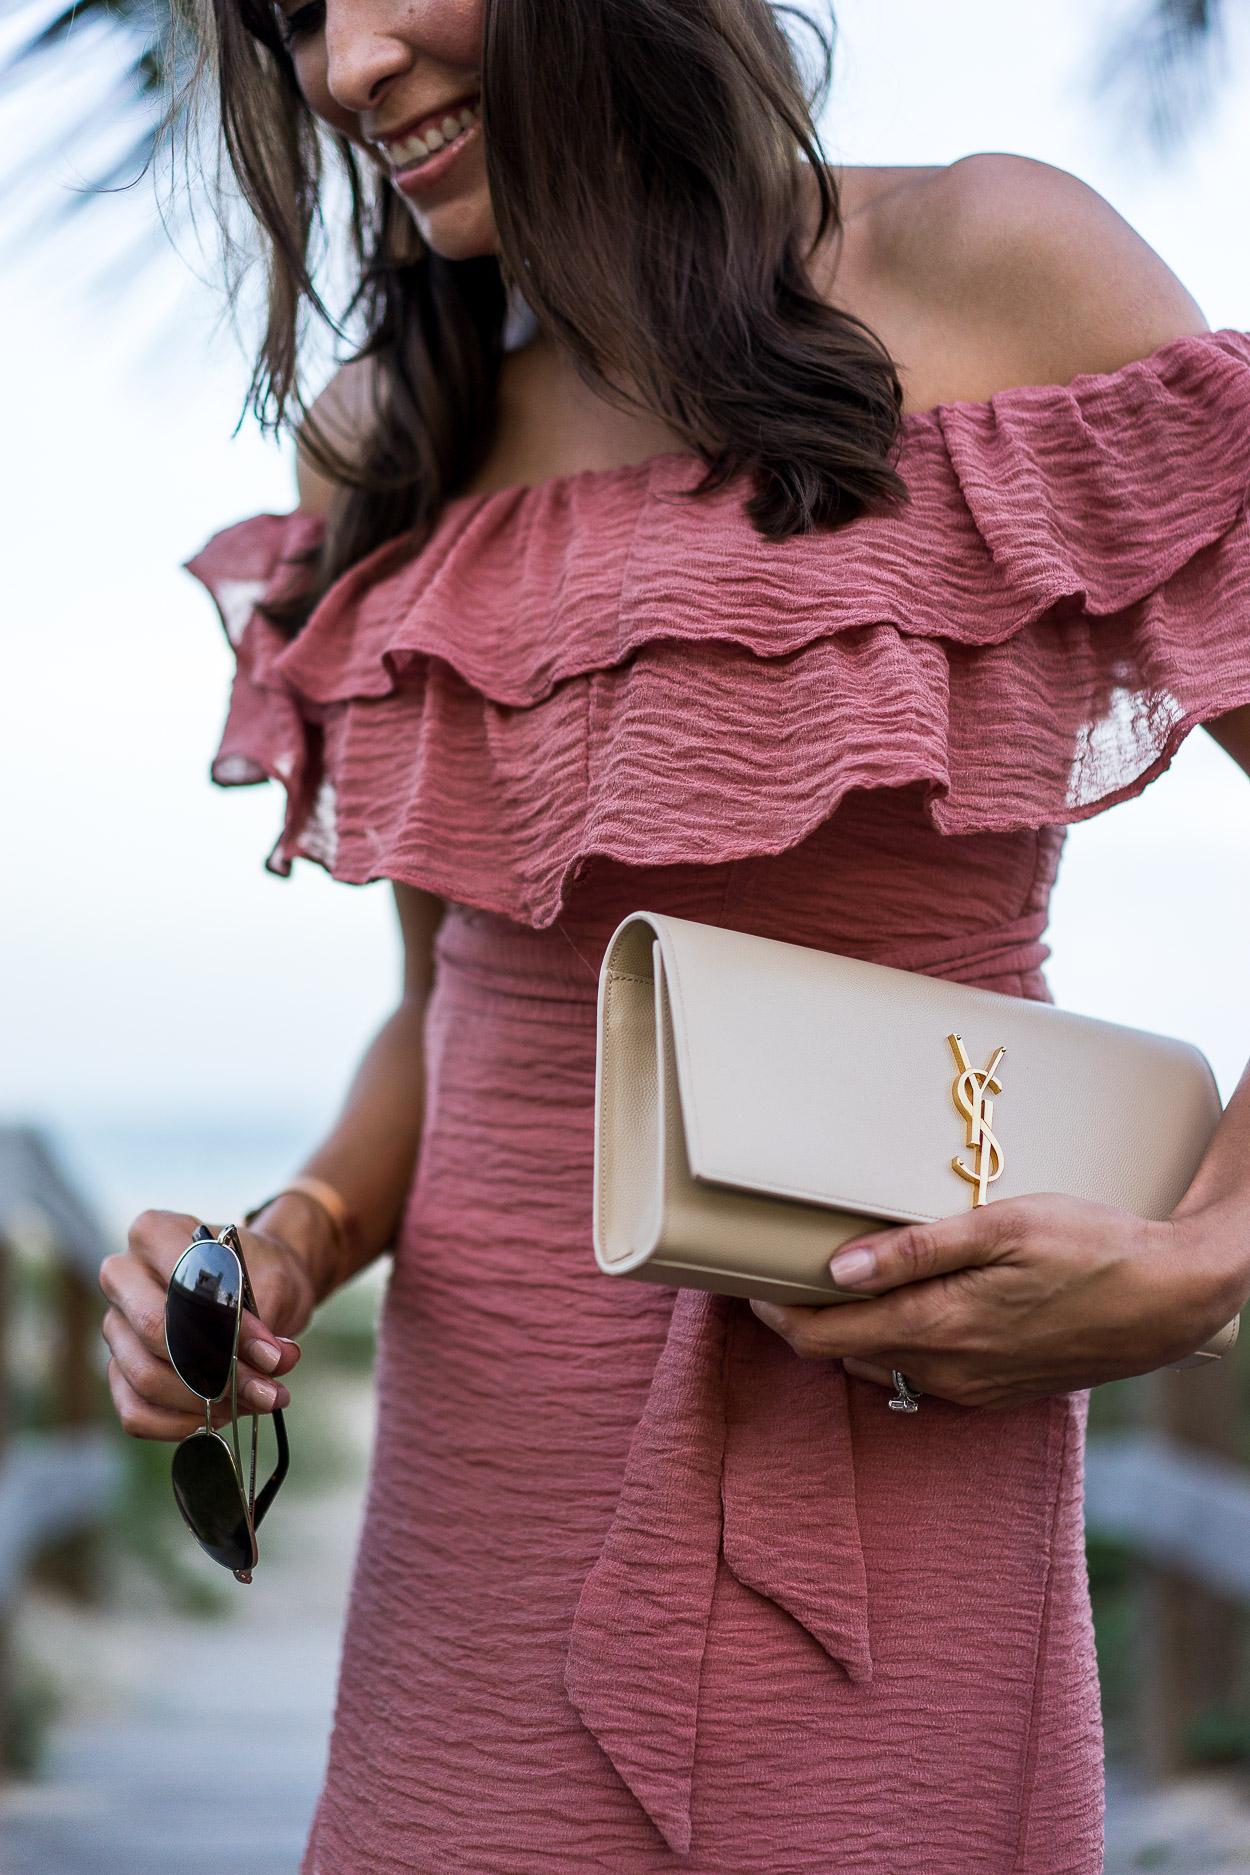 af283d84152e7 summer-style-date-night-ideas-chicwish-mauve-dress-beach-style-ysl-monogram- clutch-warby-parker-aviators-aglamlifestyle-blogger-5